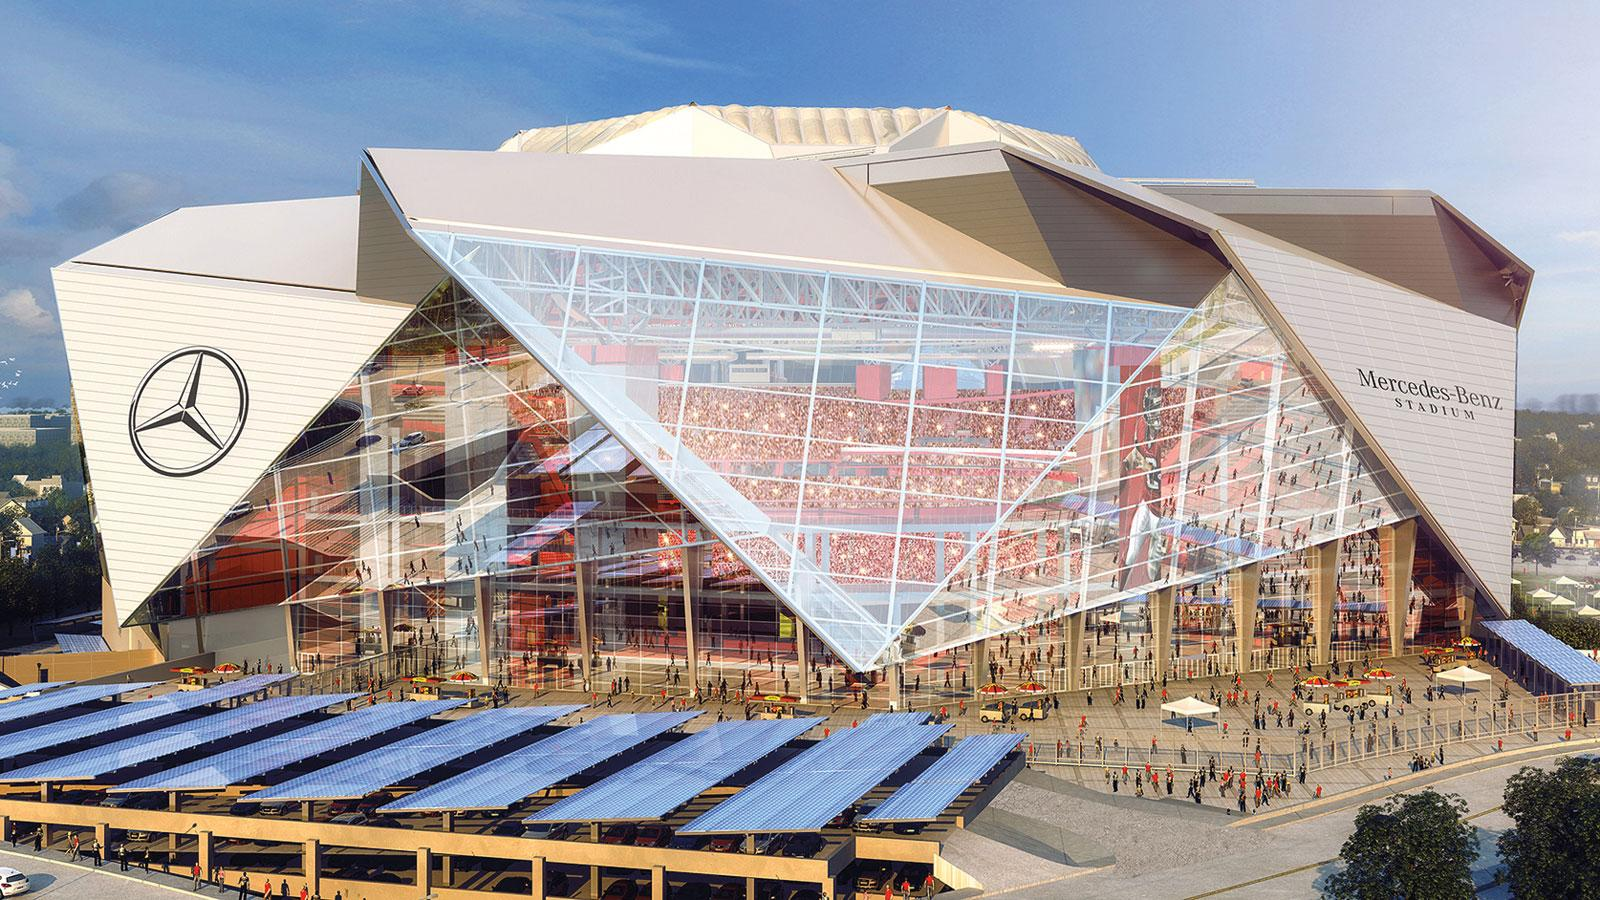 Atlanta's Mercedes-Benz Stadium drew inspiration from Rome's Pantheon with its oculus roof.